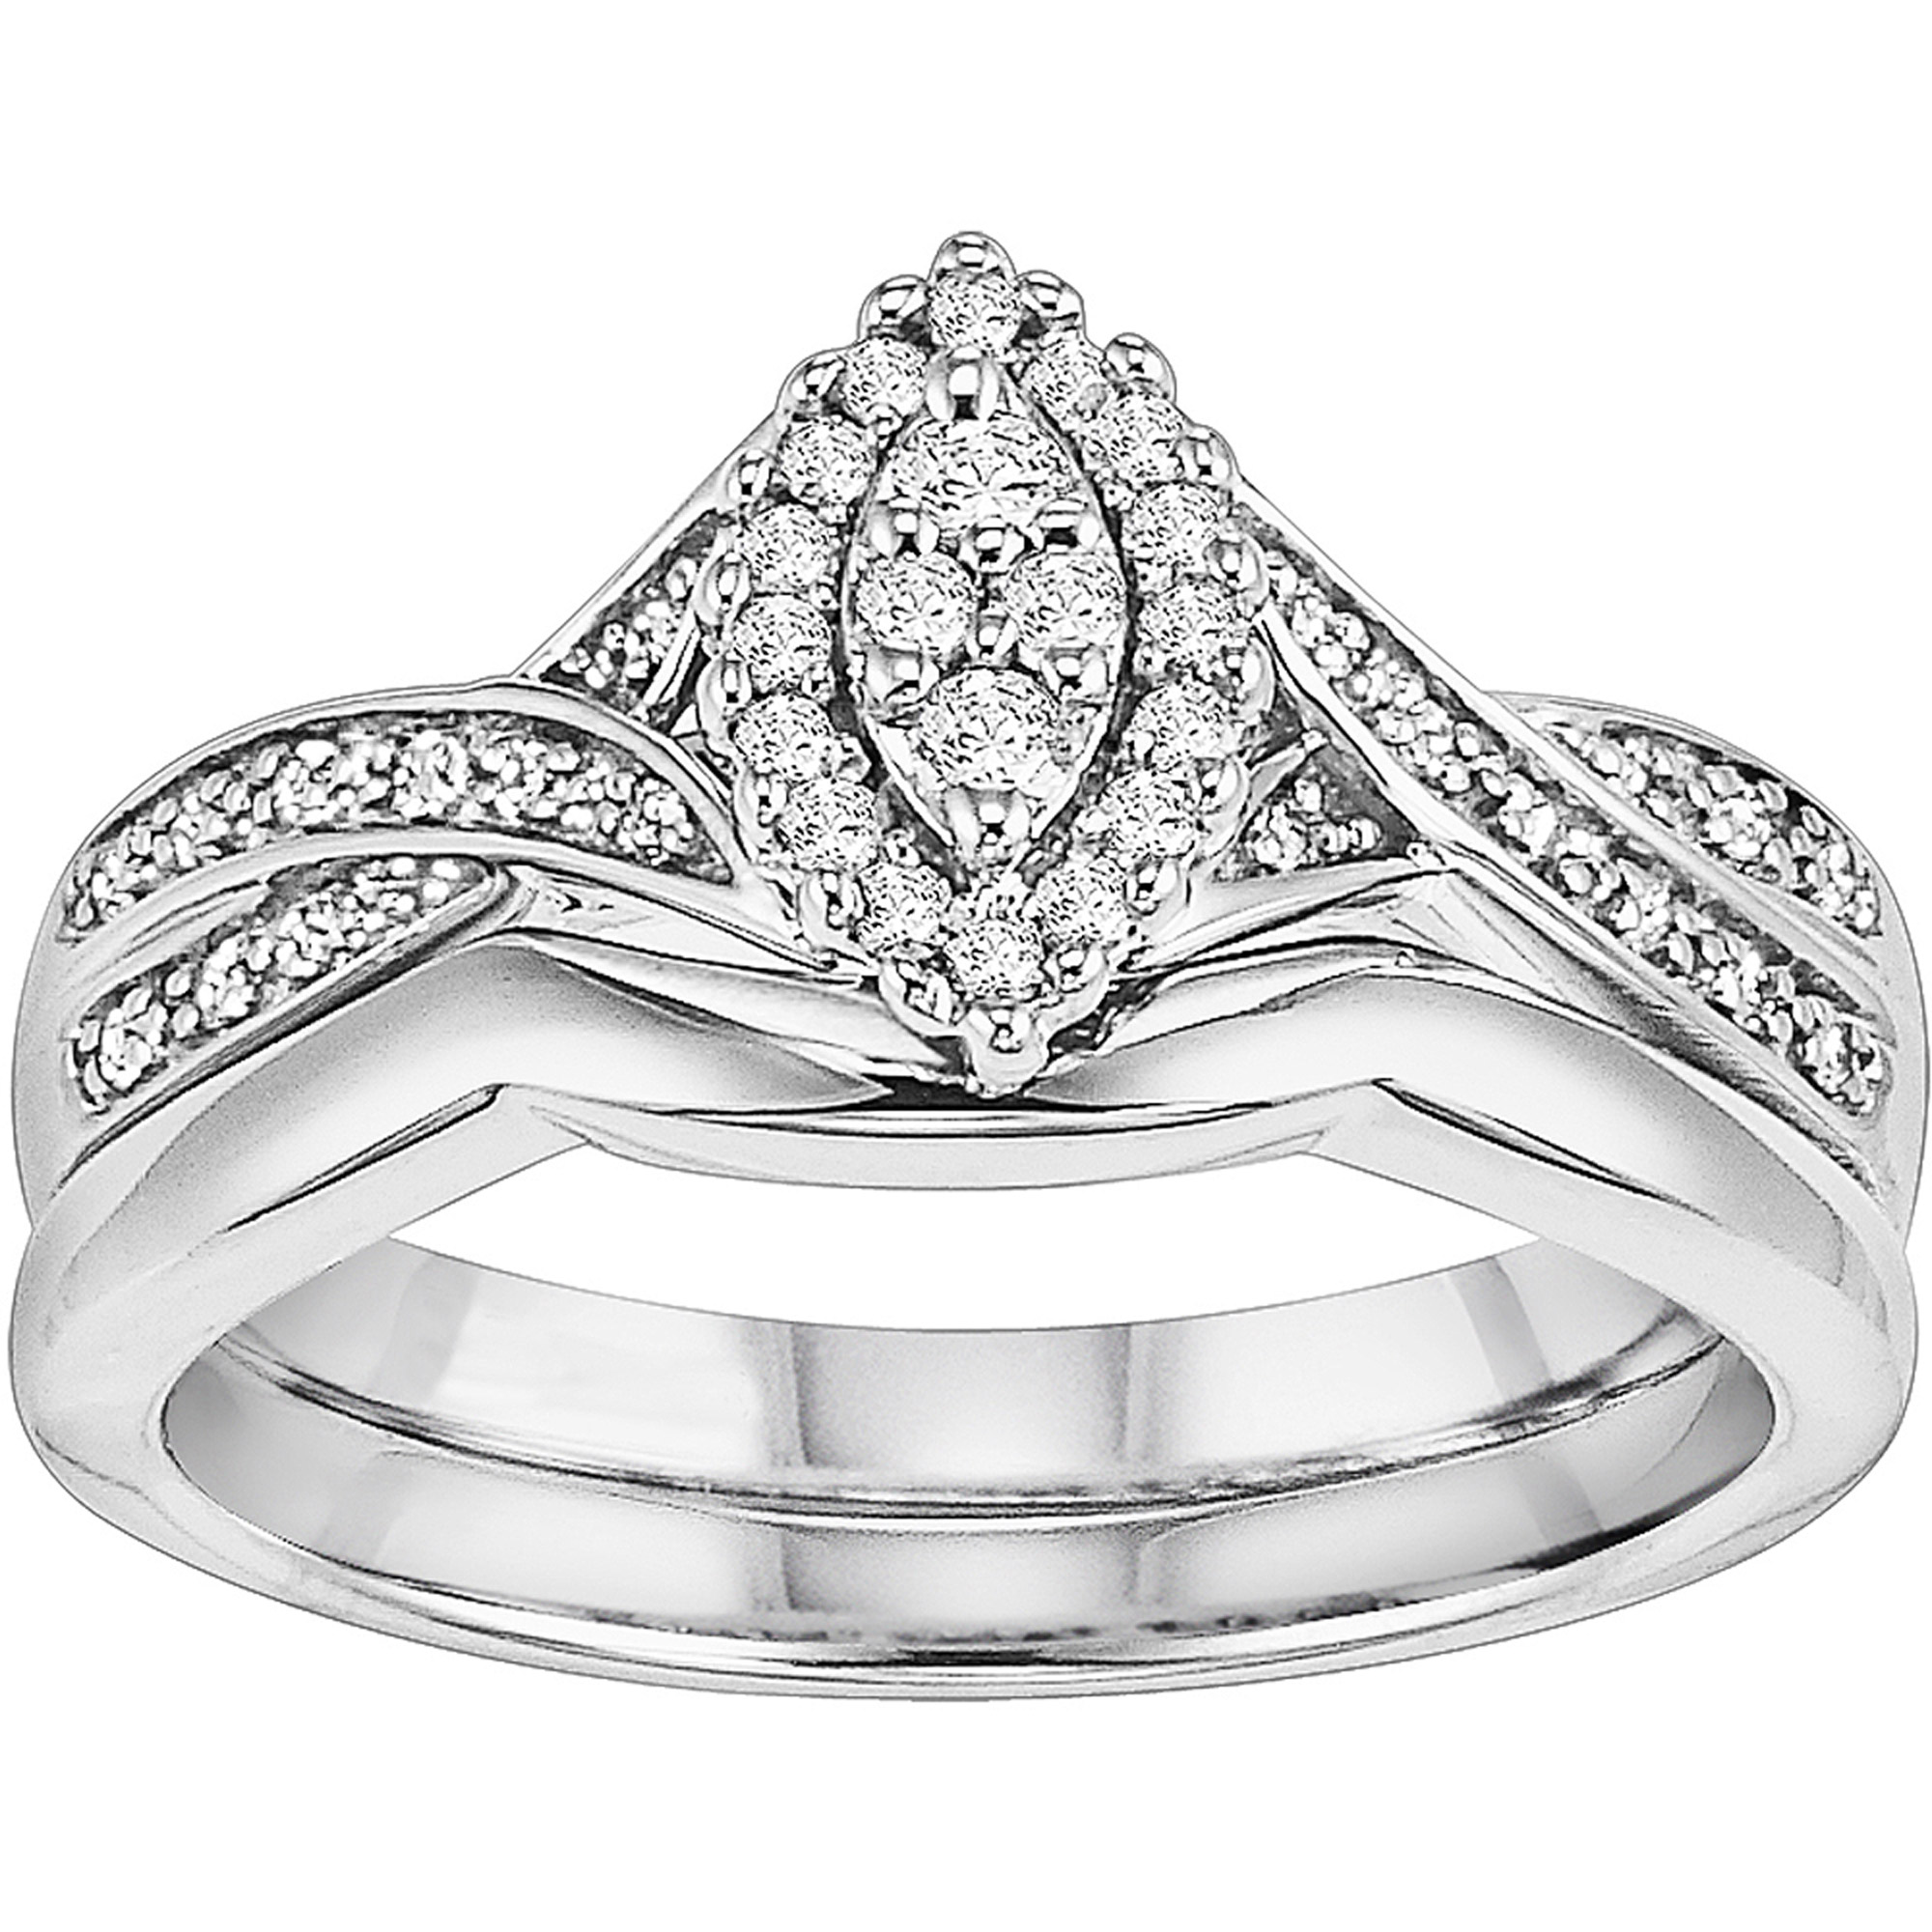 1/4 CT. T.W. Diamond Marquise Bridal Set in Sterling Silver